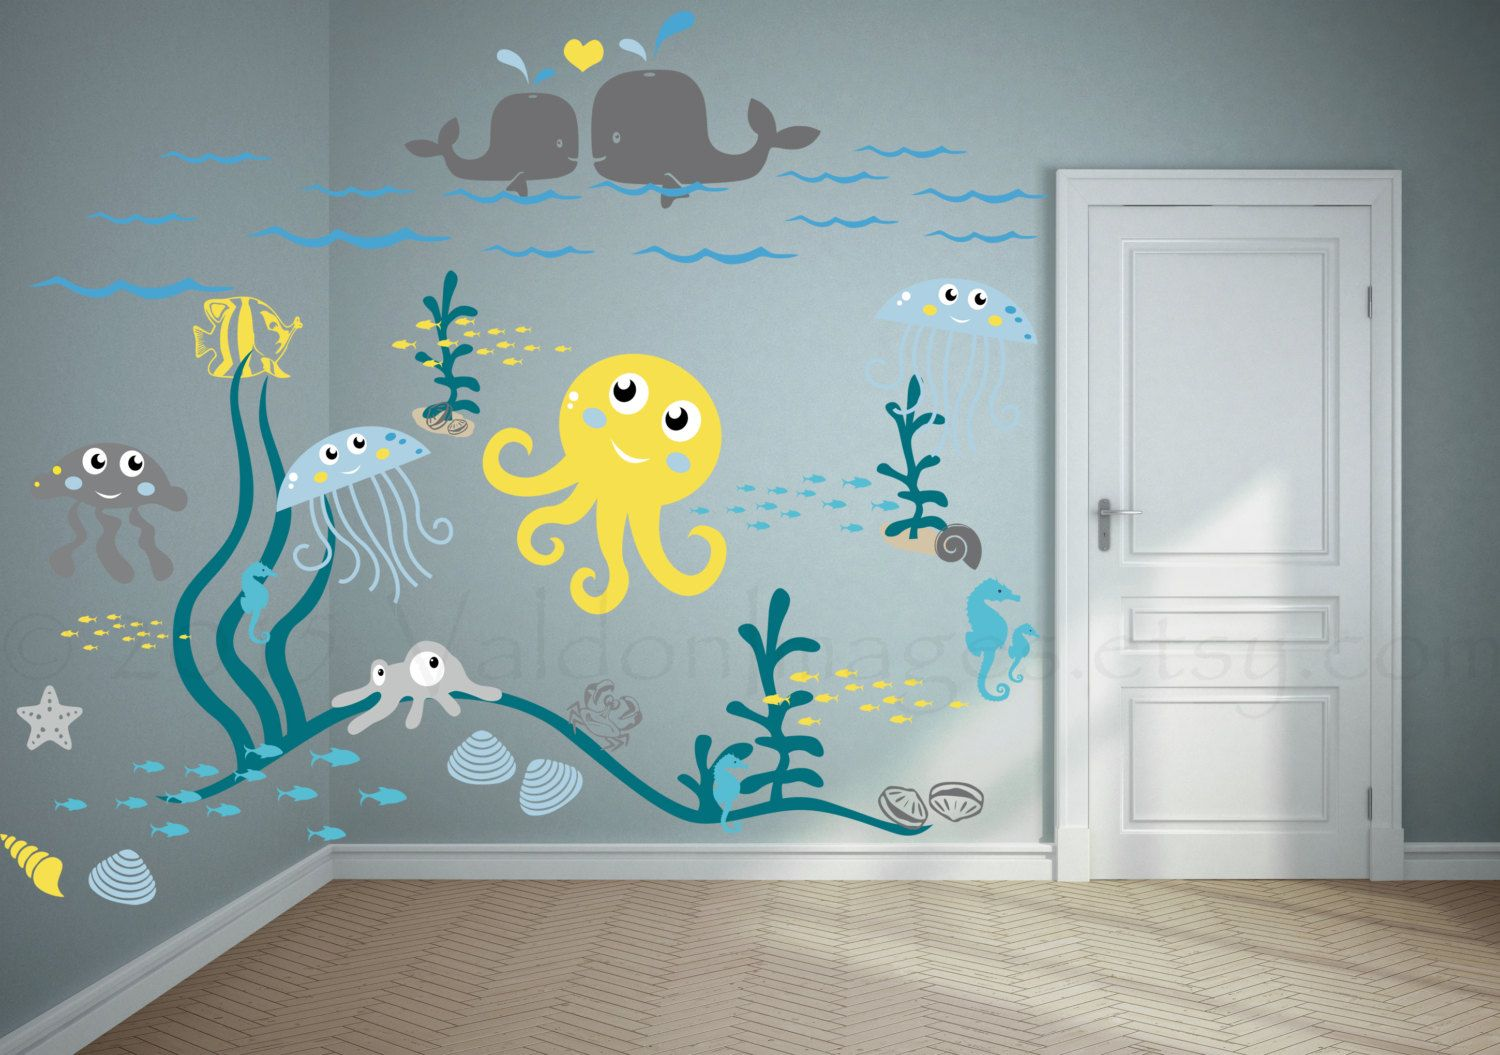 Jellyfish adventure wall decal nursery wall decal kids decor jellyfish adventure wall decal nursery wall decal kids decor beach nursery decor ocean wall decal nautical nursery decor kids decal amipublicfo Gallery